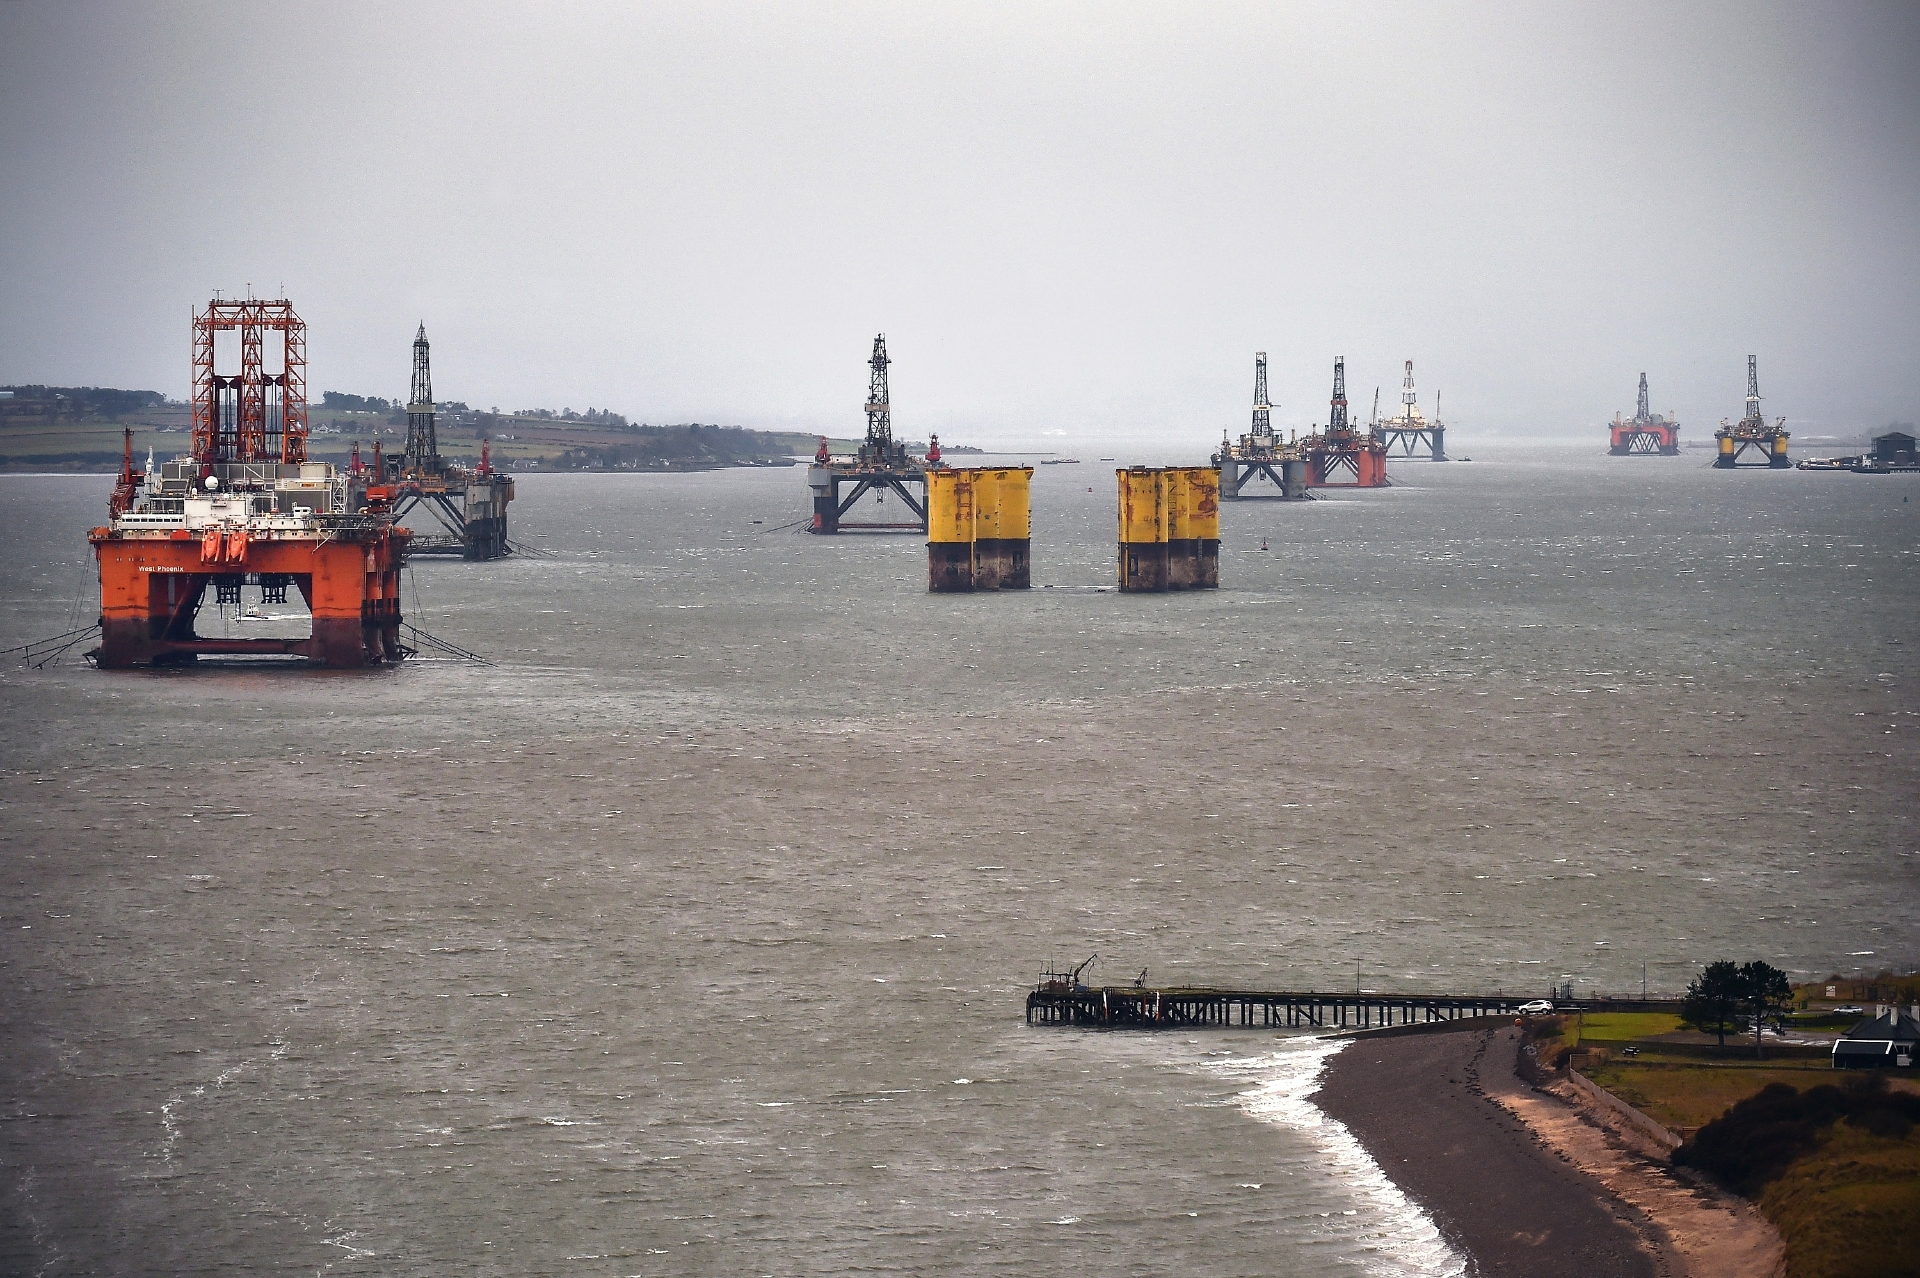 Oil platforms stacked up in the Cromarty Firth.